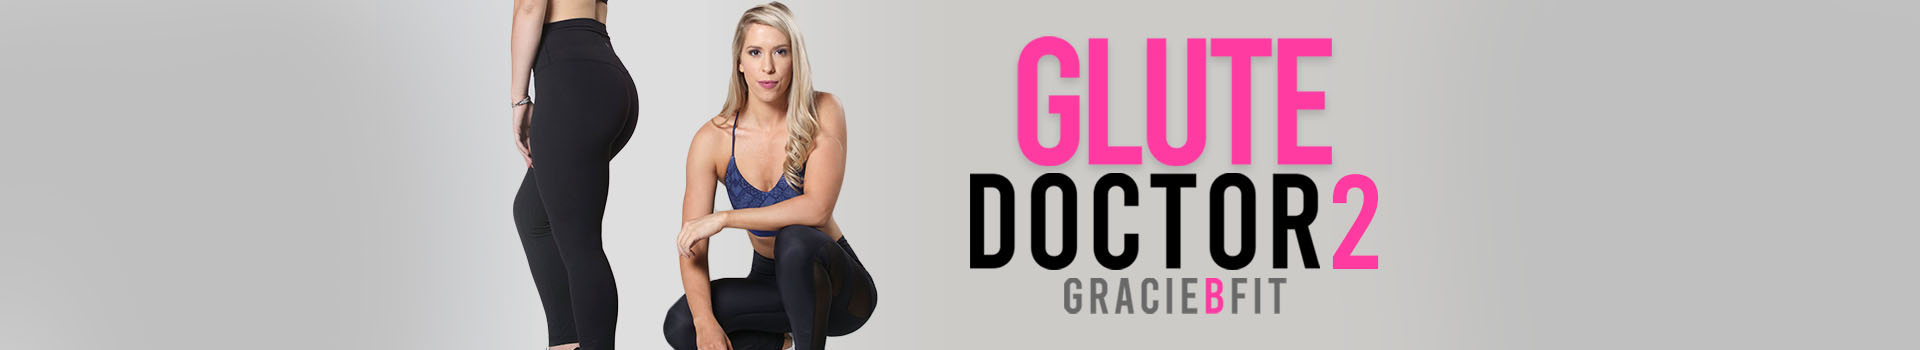 Glute Doctor 2